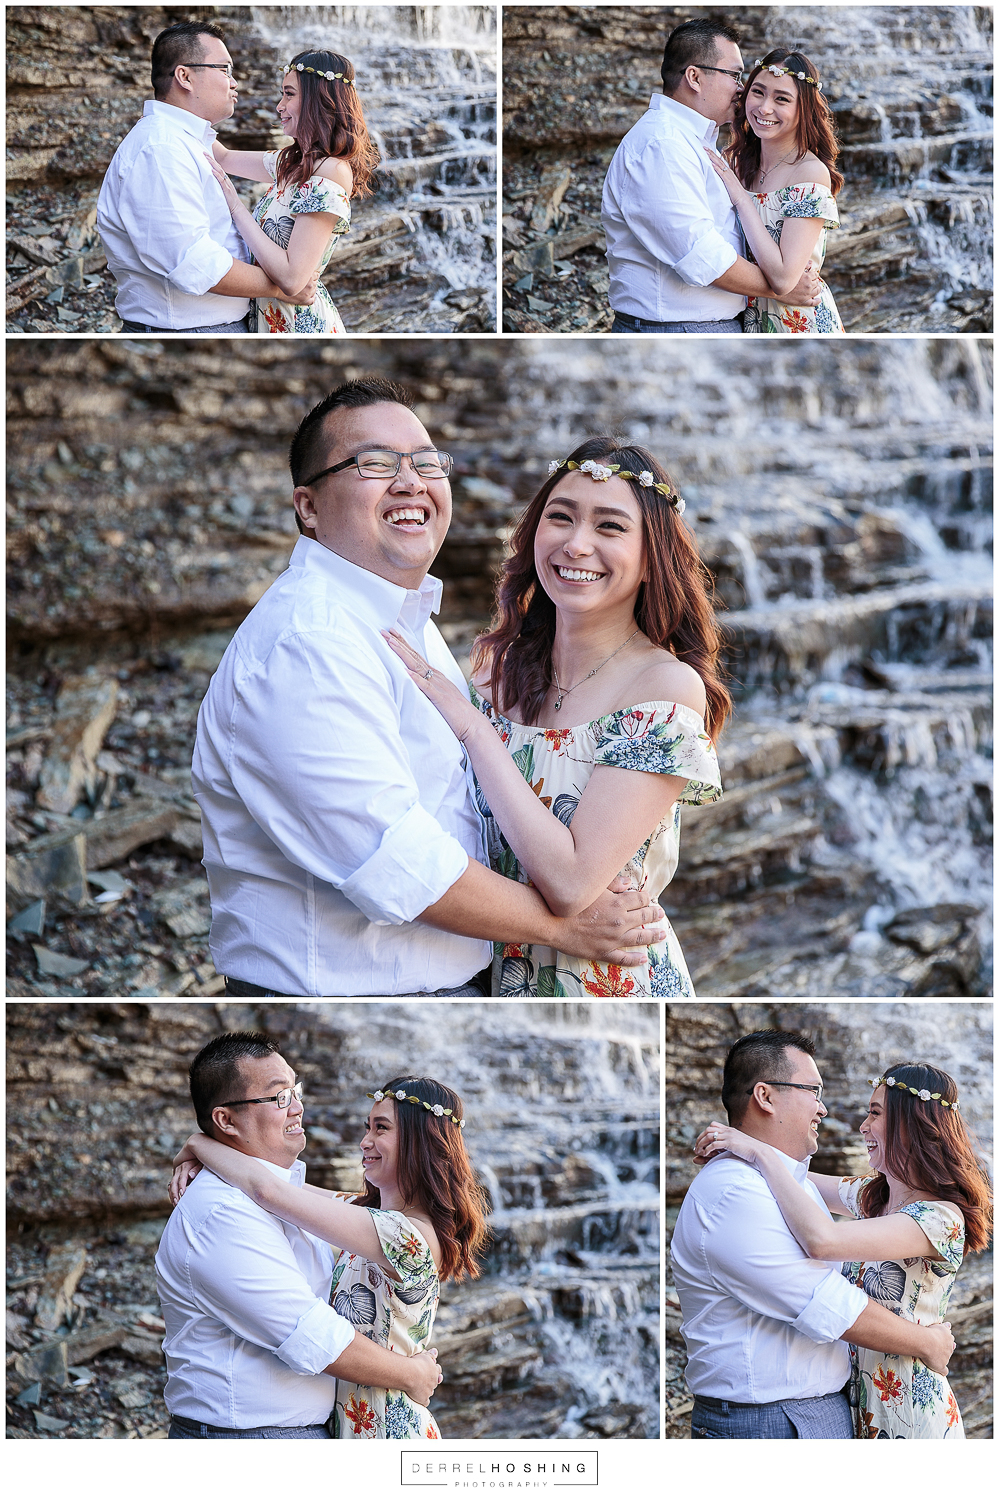 Albion-Falls-Engagment-Shoot-Hamilton-Toronto-Wedding-Photographer-Derrel-Hoshing-0004.jpg